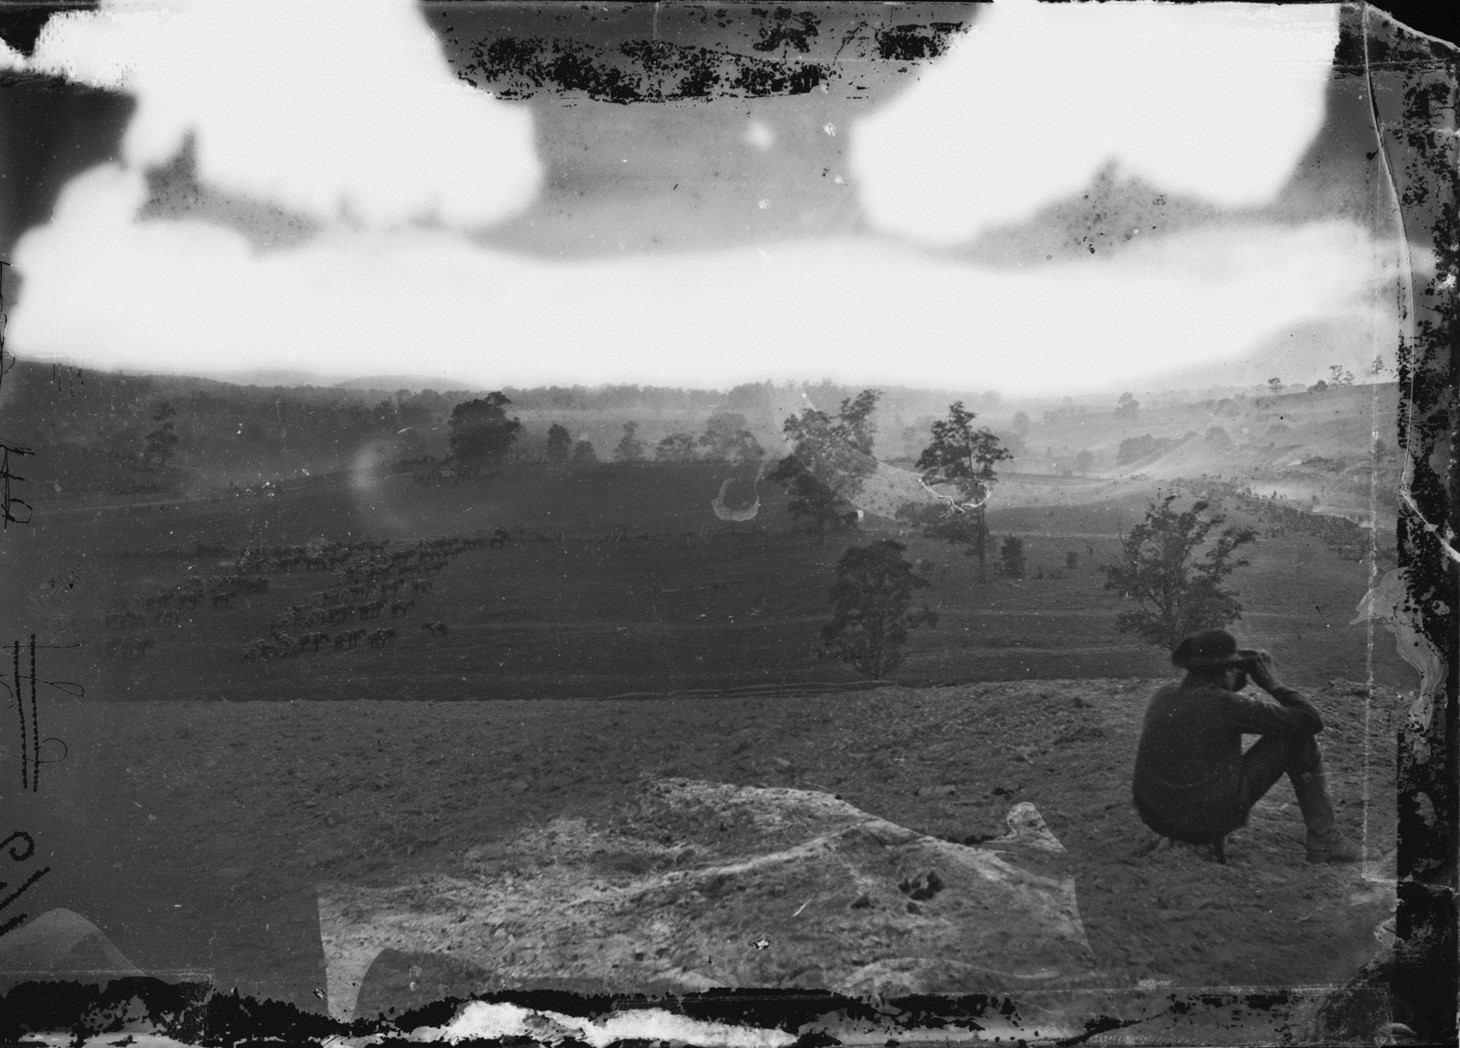 Photo of the Antietam battlefield taken on the day of the battle by Alexander Gardner